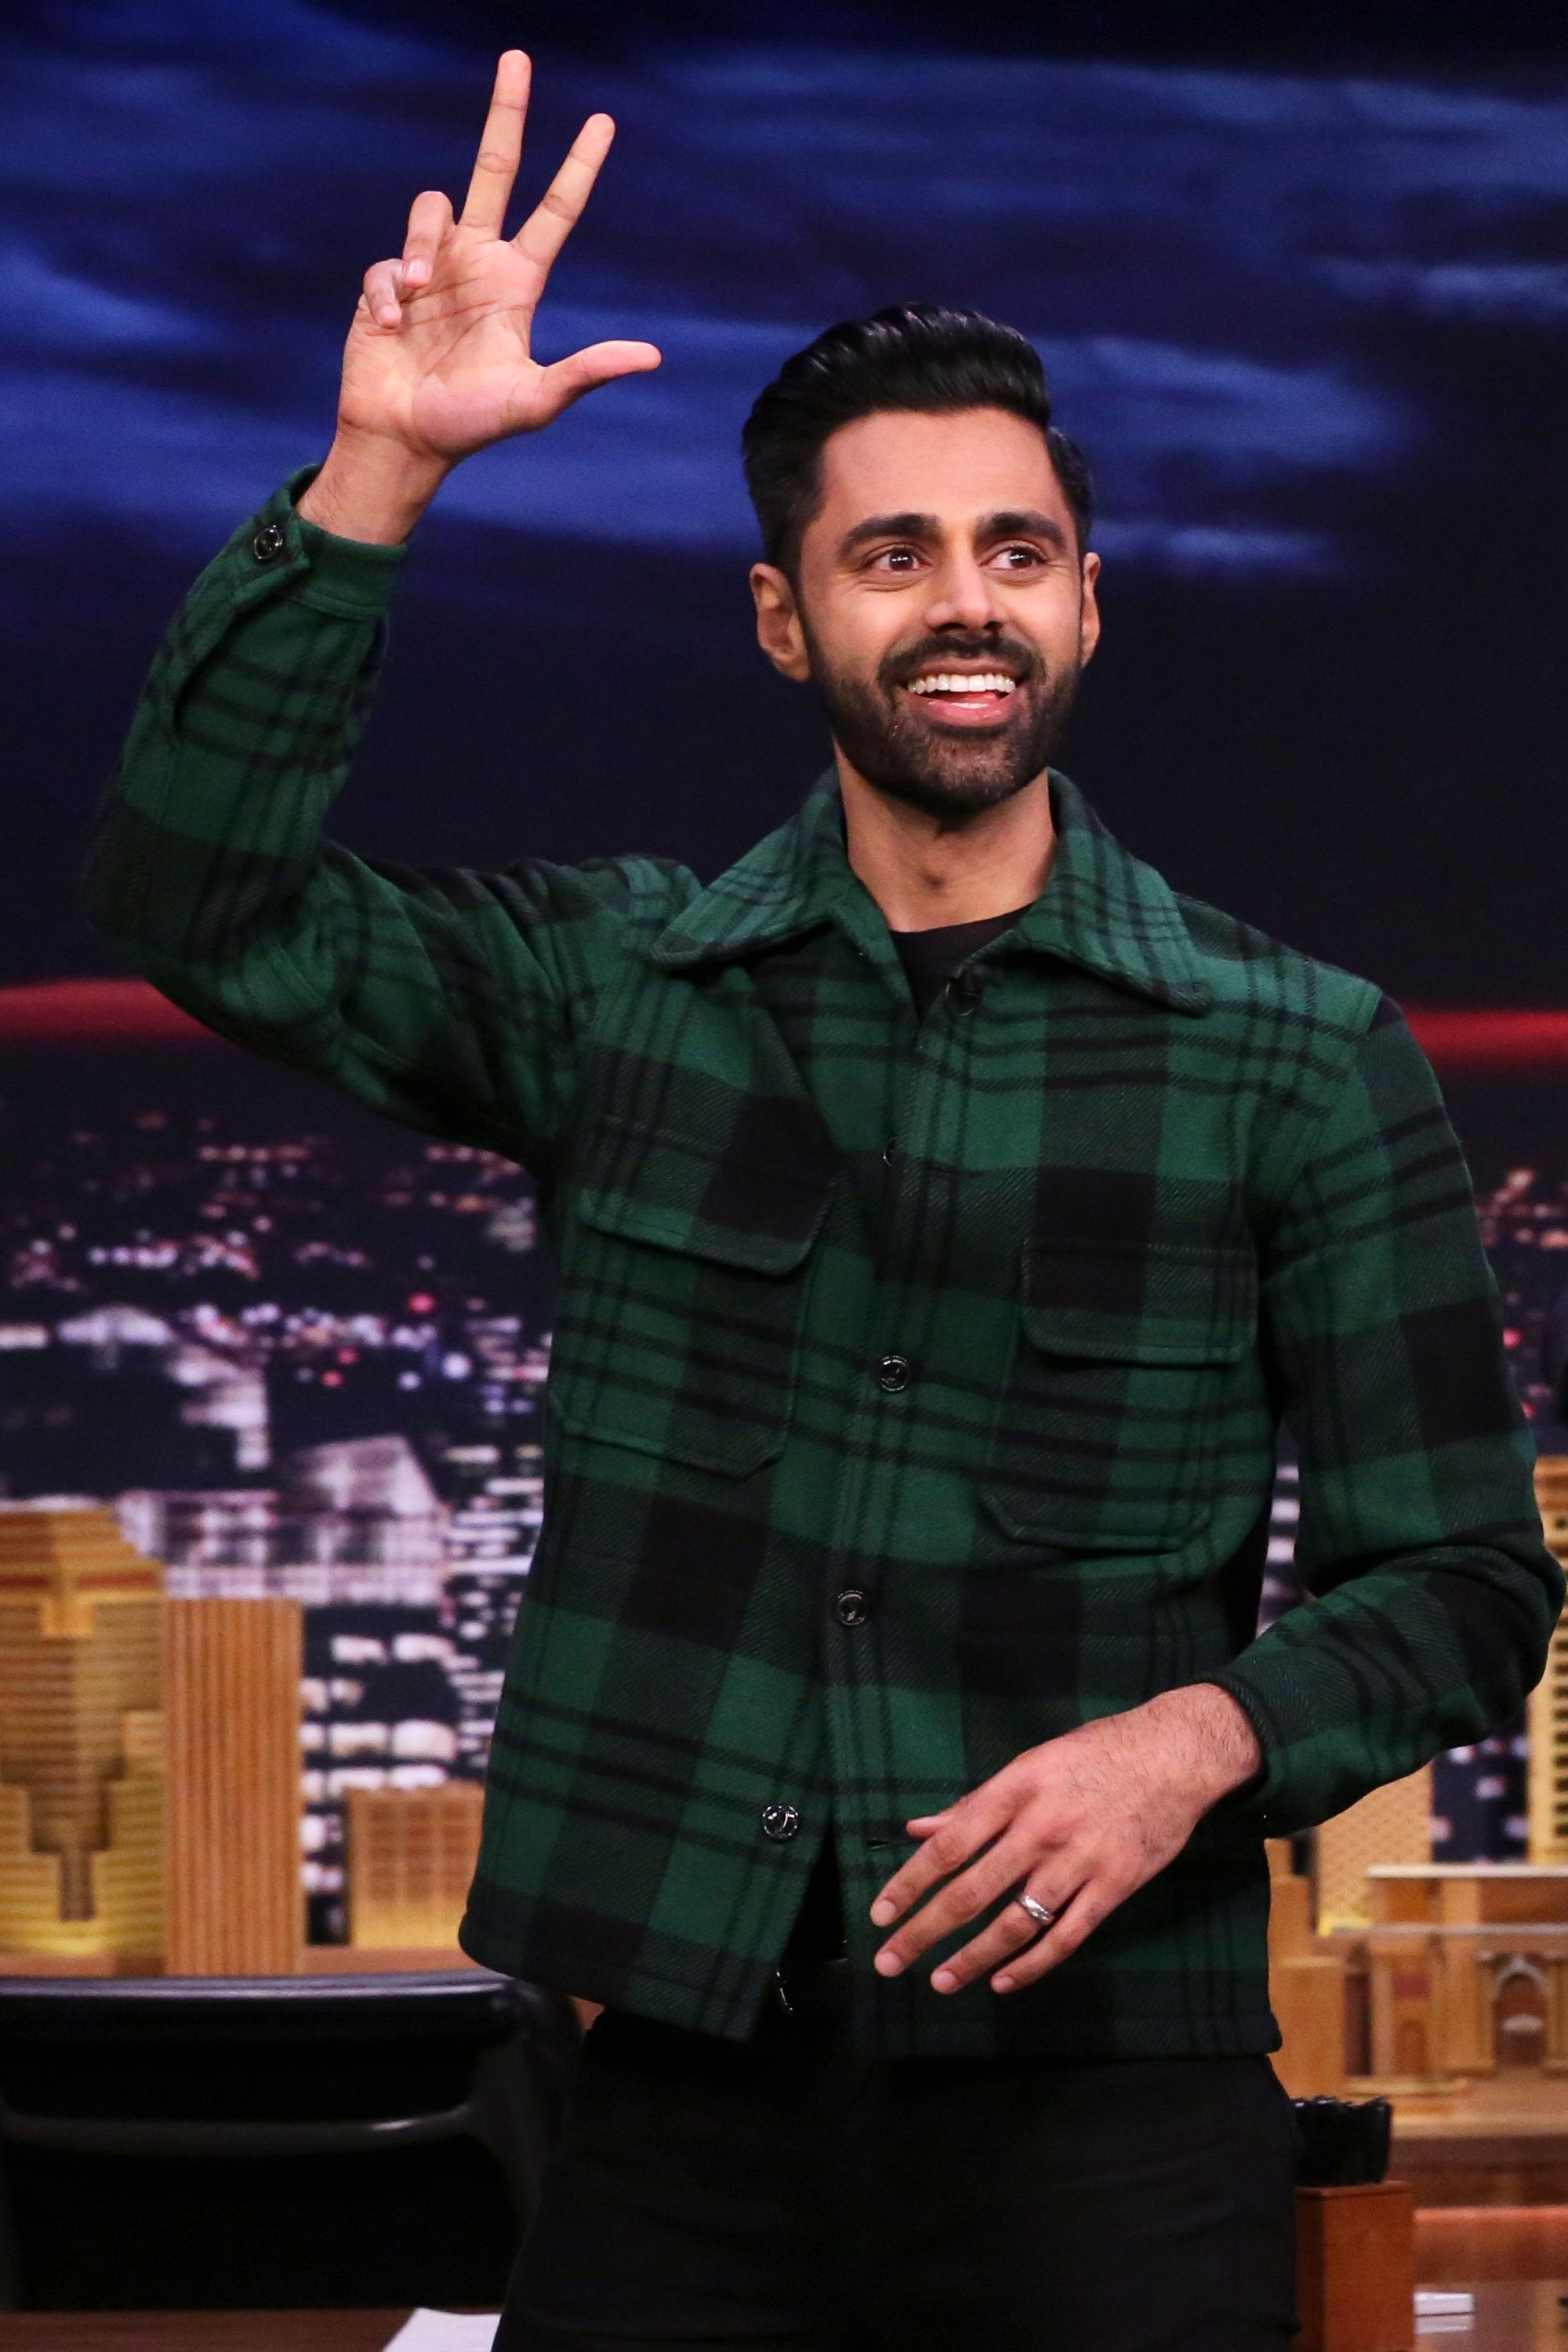 THE TONIGHT SHOW STARRING JIMMY FALLON -- Episode 1021 -- Pictured: Comedian Hasan Minhaj arrives to the show on February 22, 2019 -- (Photo by: Andrew Lipovsky/NBC/NBCU Photo Bank via Getty Images)